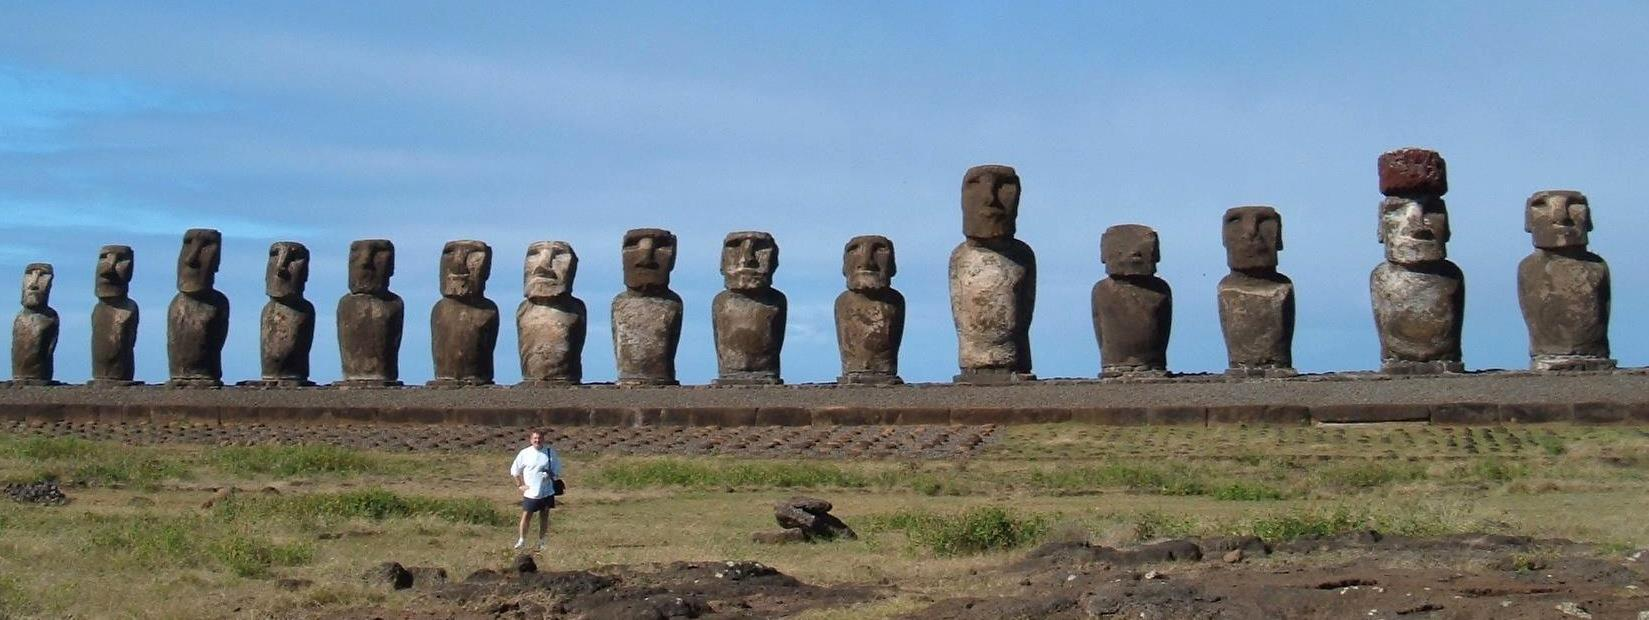 Among the moai on Isla de Pascua